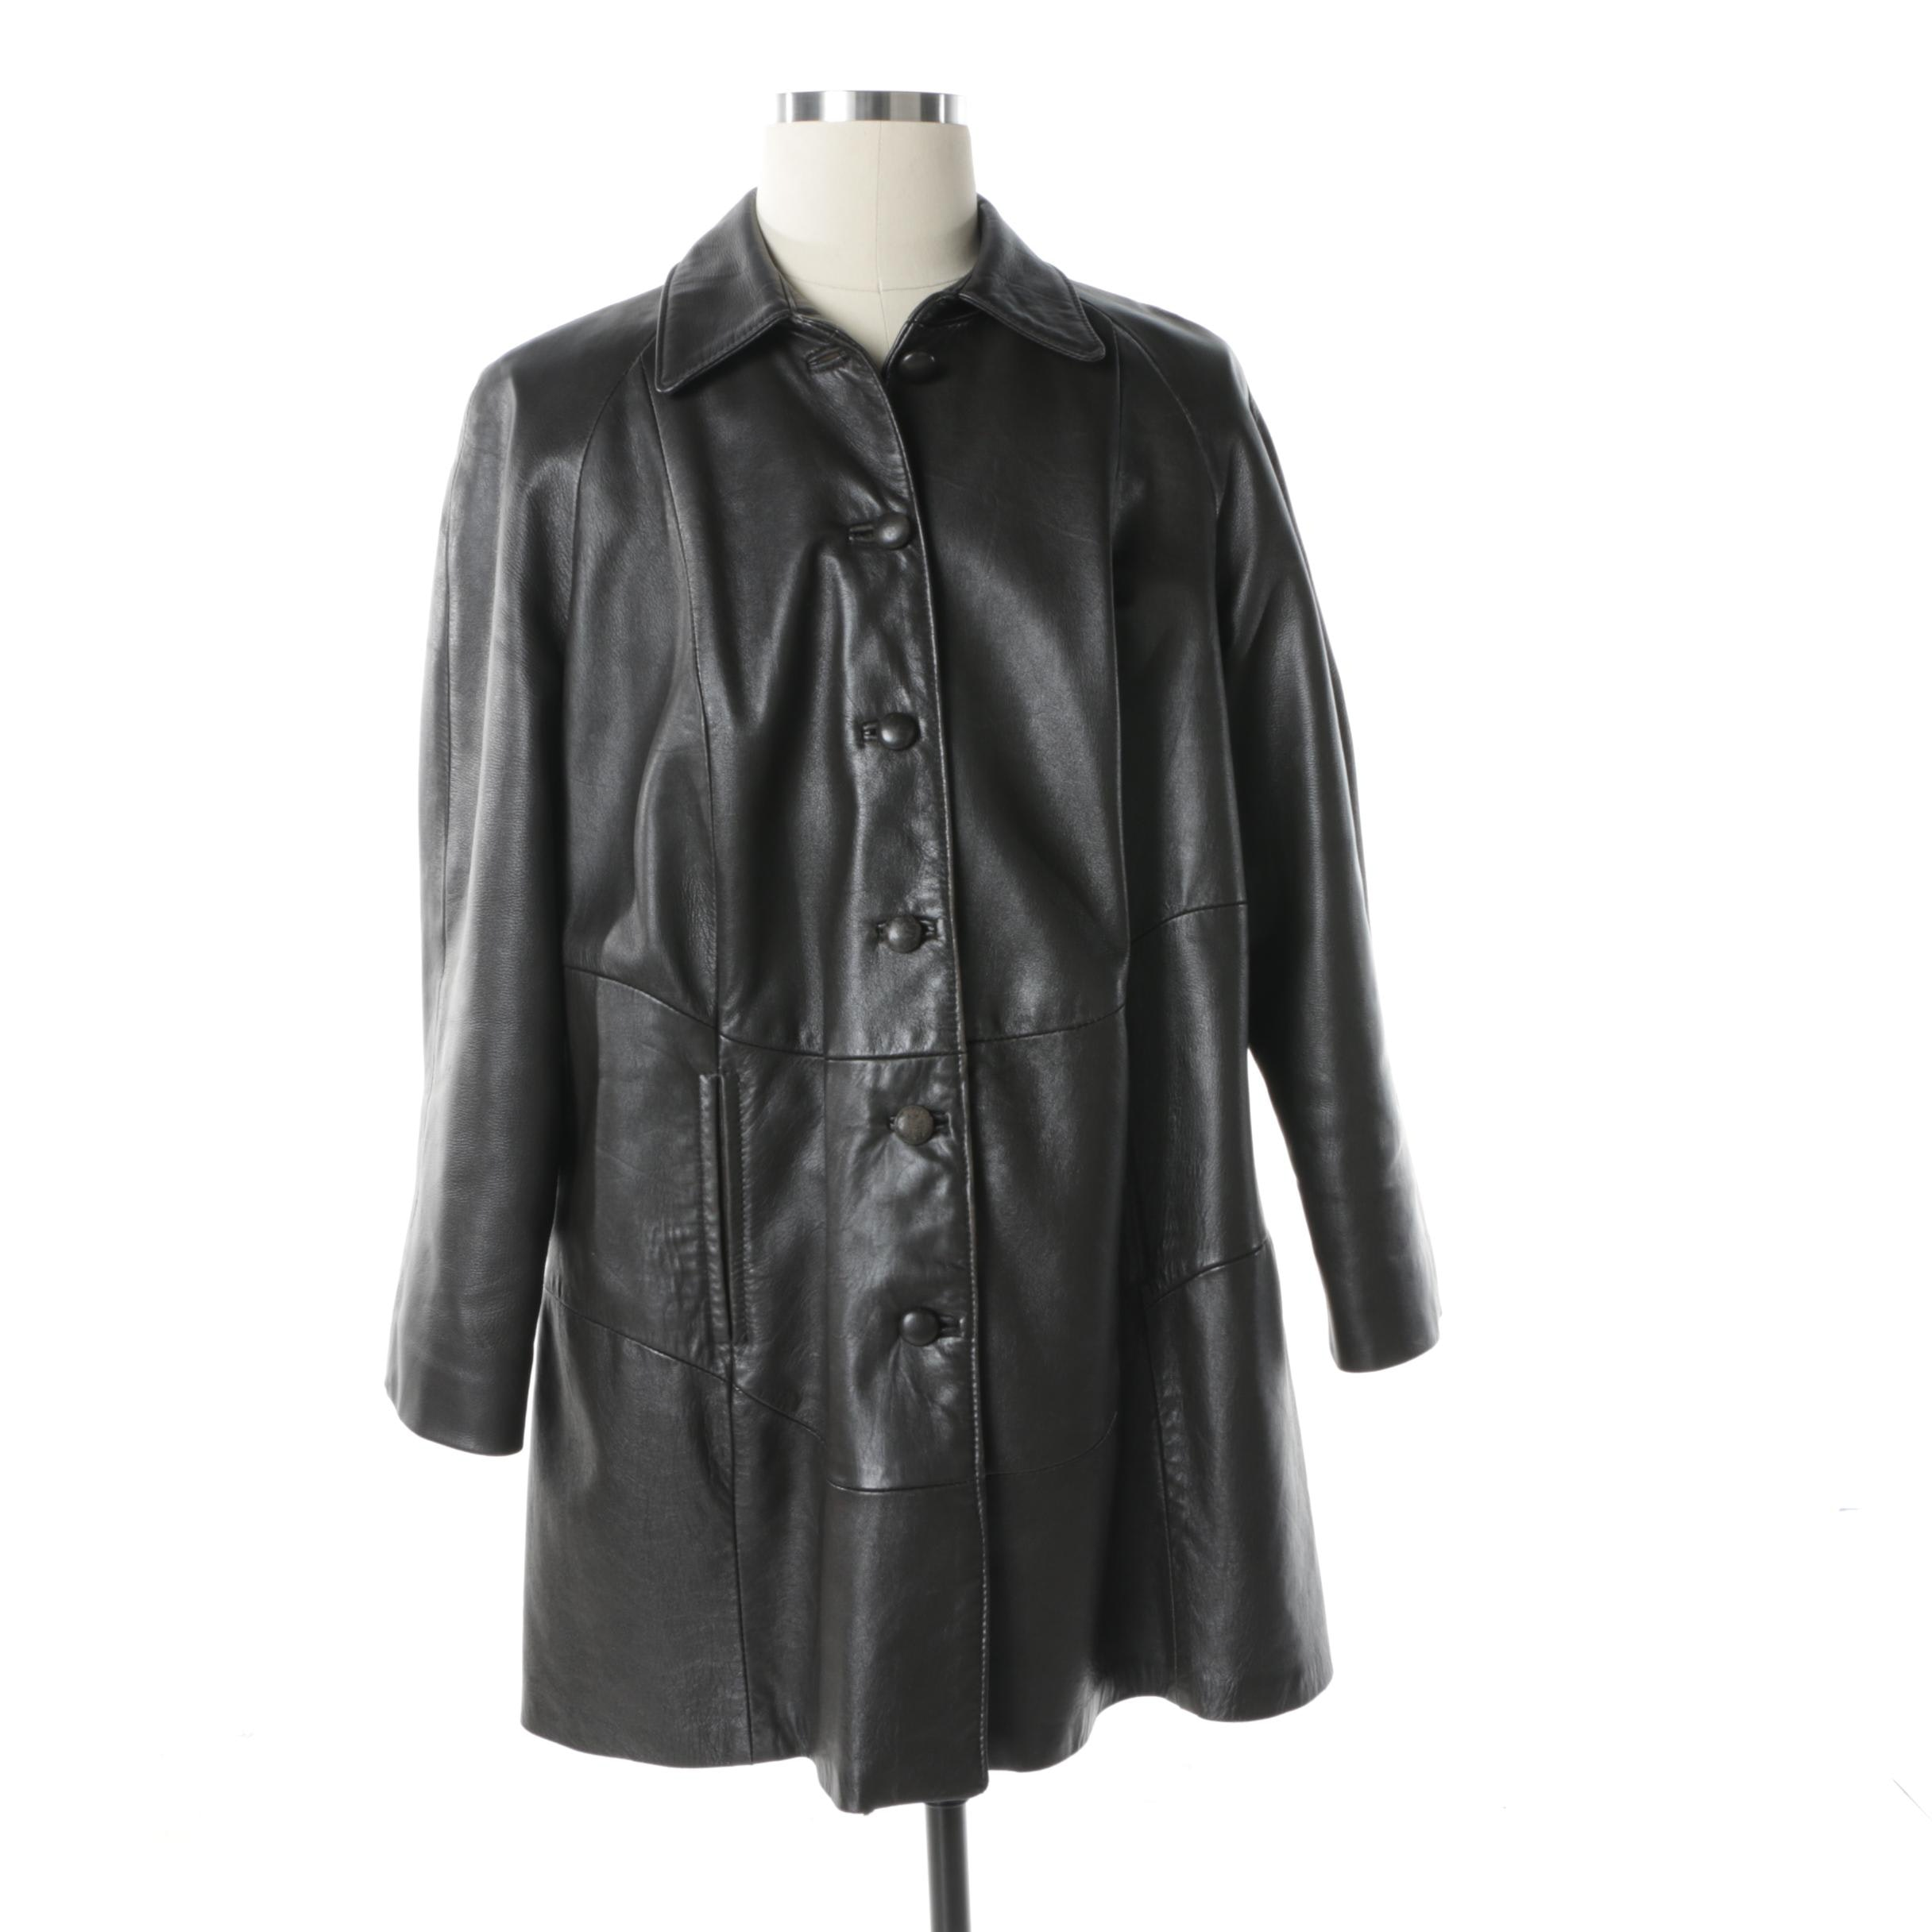 Women's The Leather Factory Black Leather Jacket